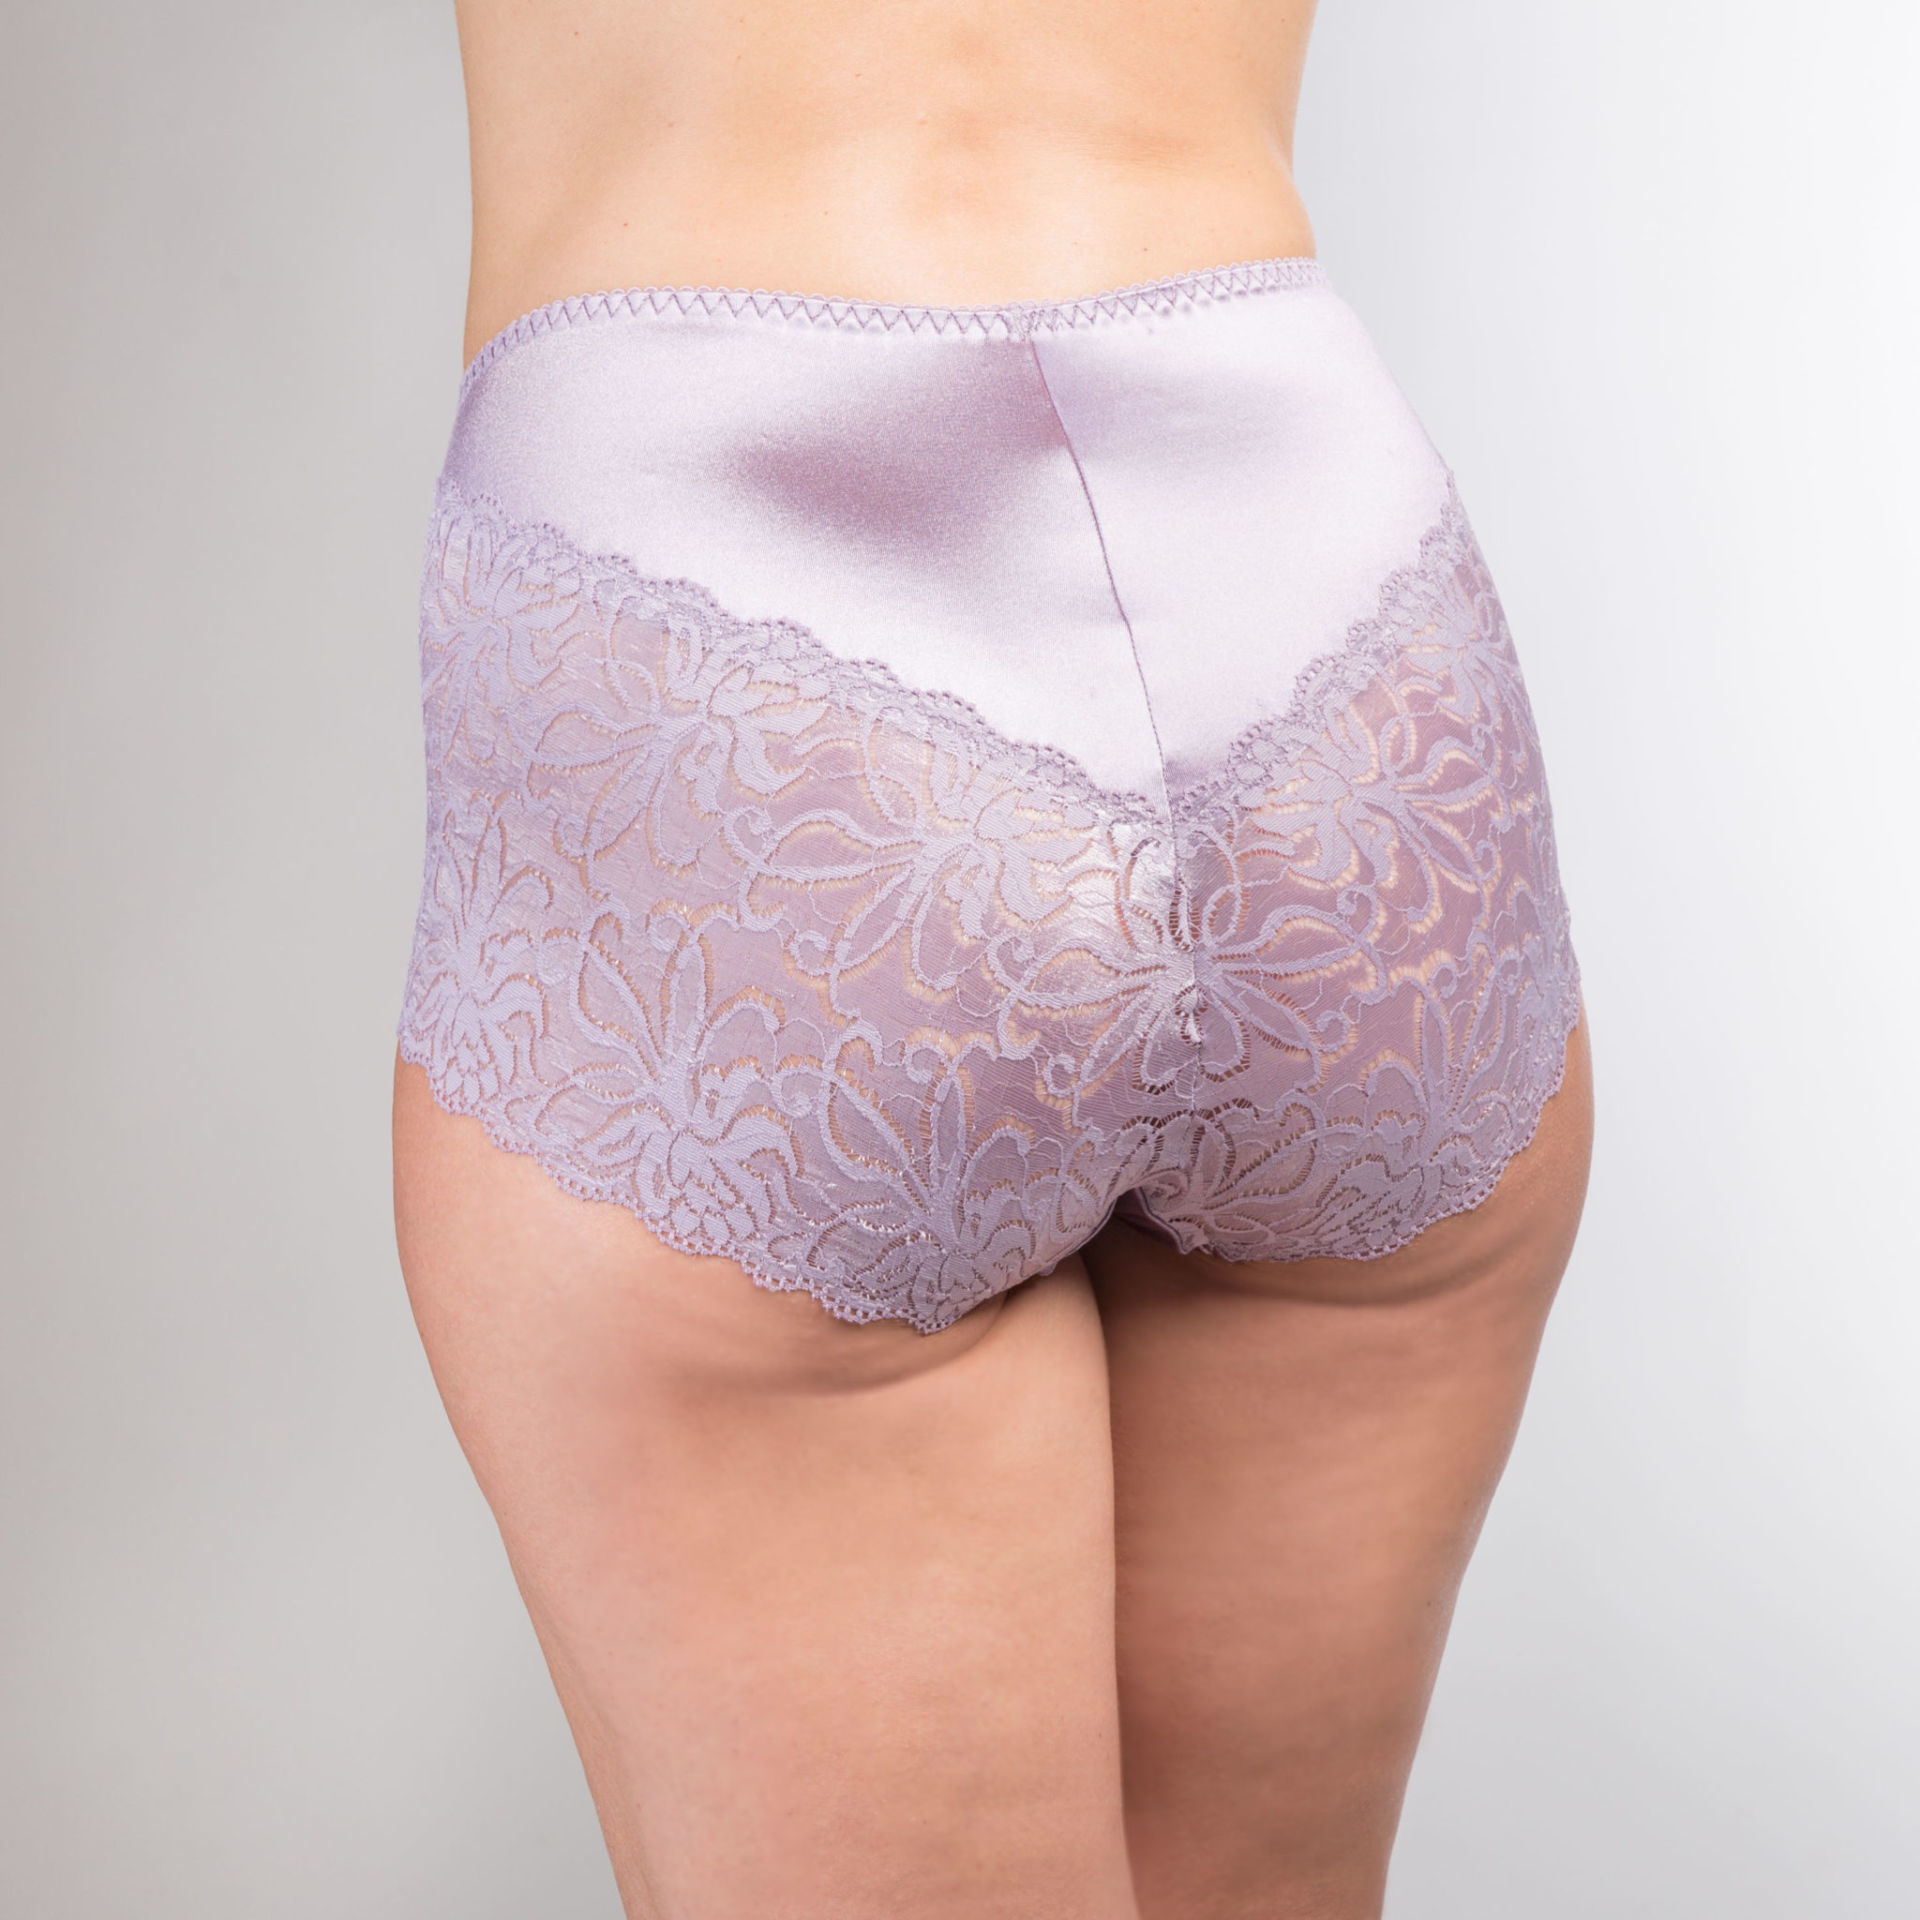 ms pomelo lace galore briefs 122 lilac dawn back atmospheric image